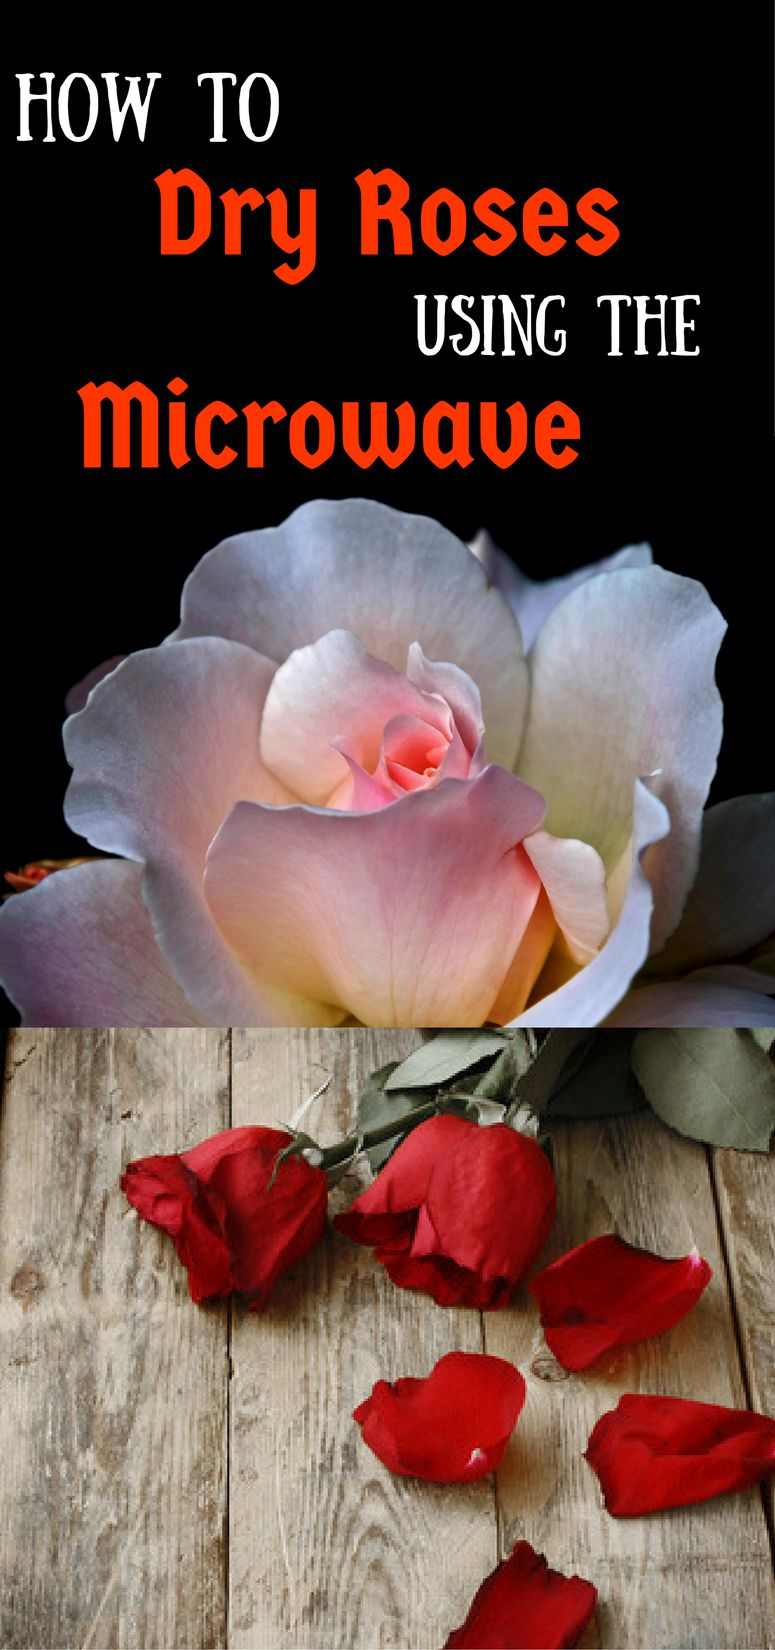 How To Dry Roses Using The Microwave Aspiring Homemaker